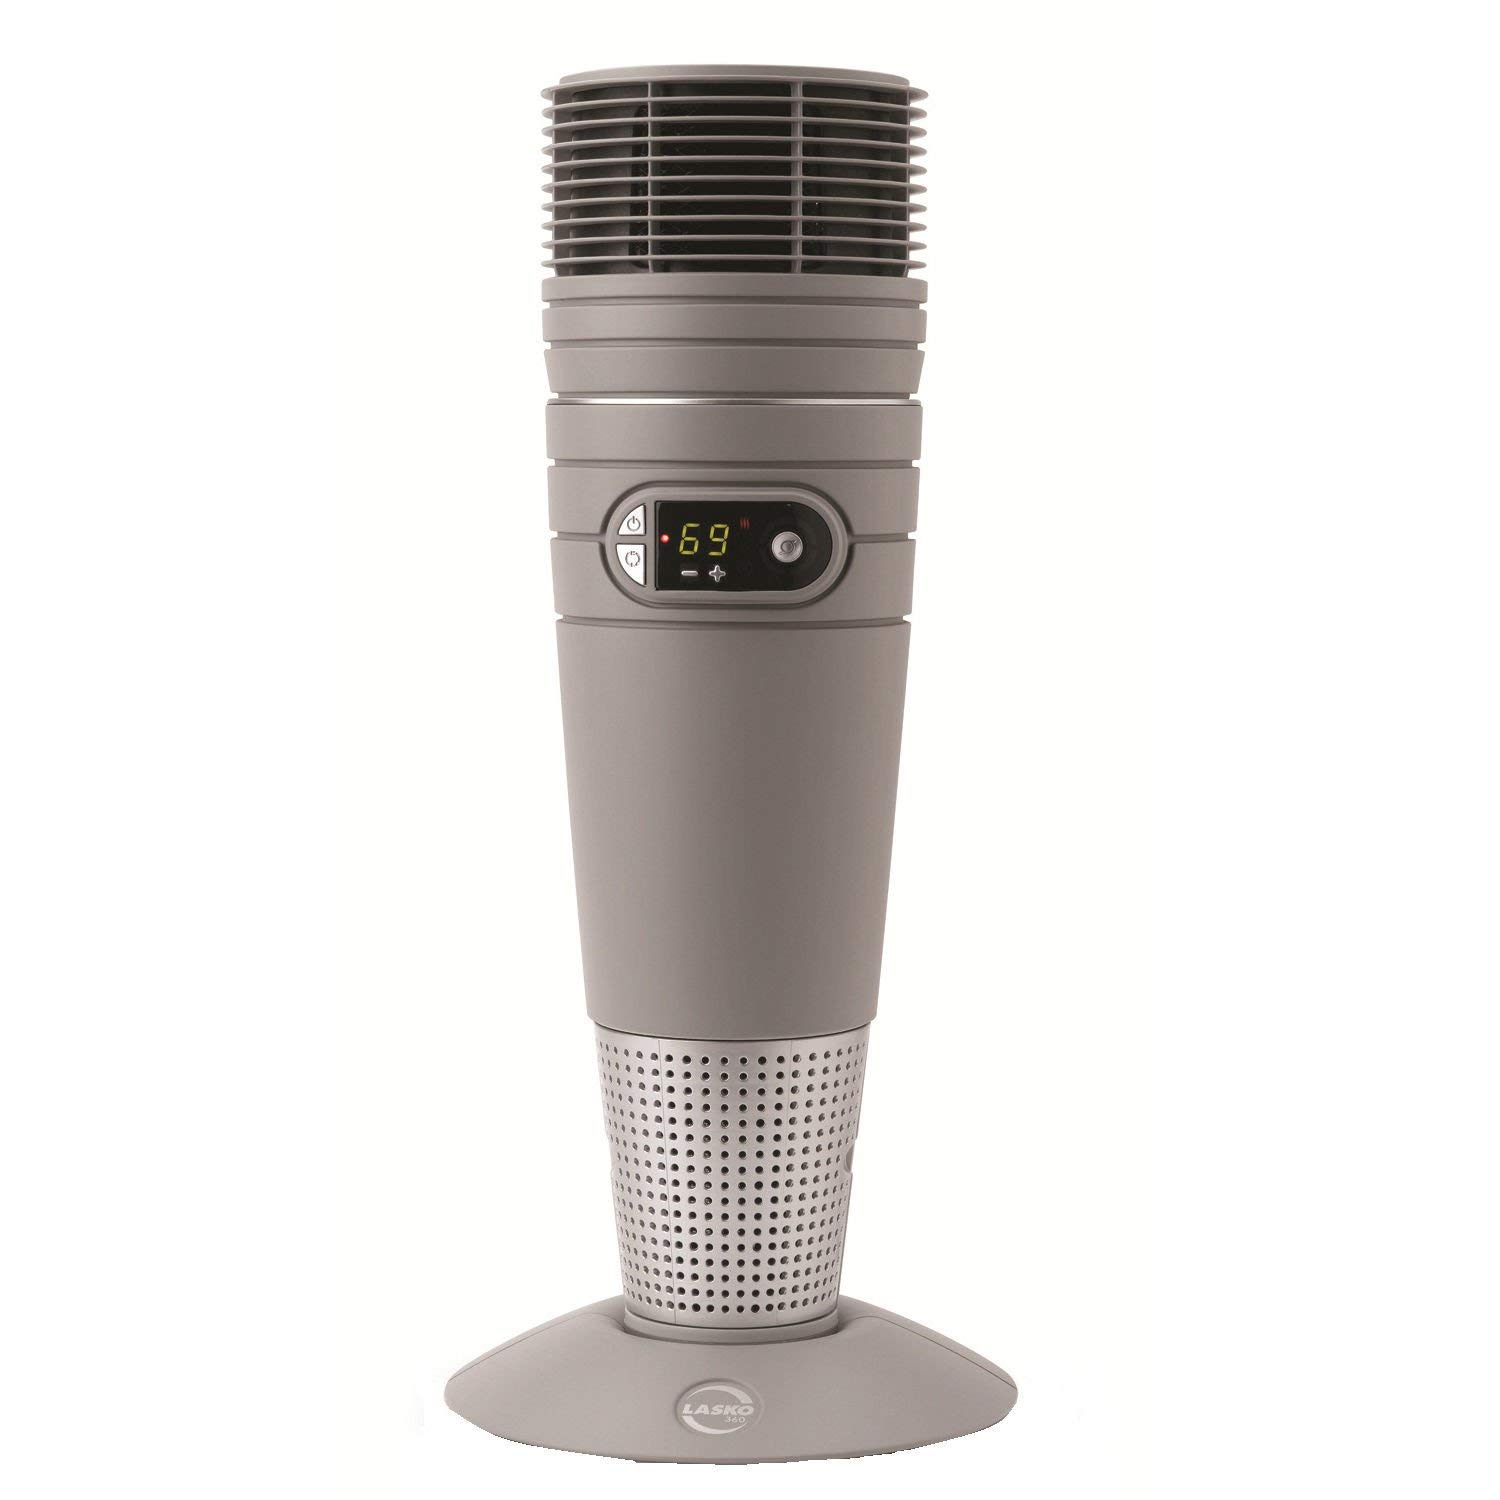 Lasko 6462 best space heater